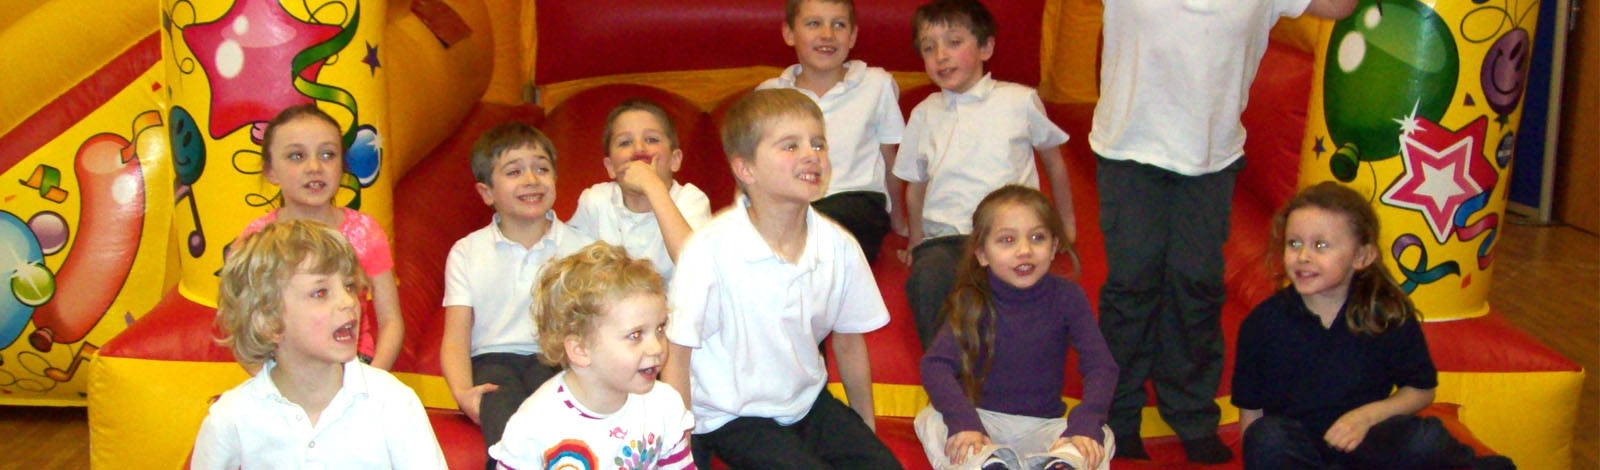 Special Activities at Kids Dawn Til Dusk Before and After School Club